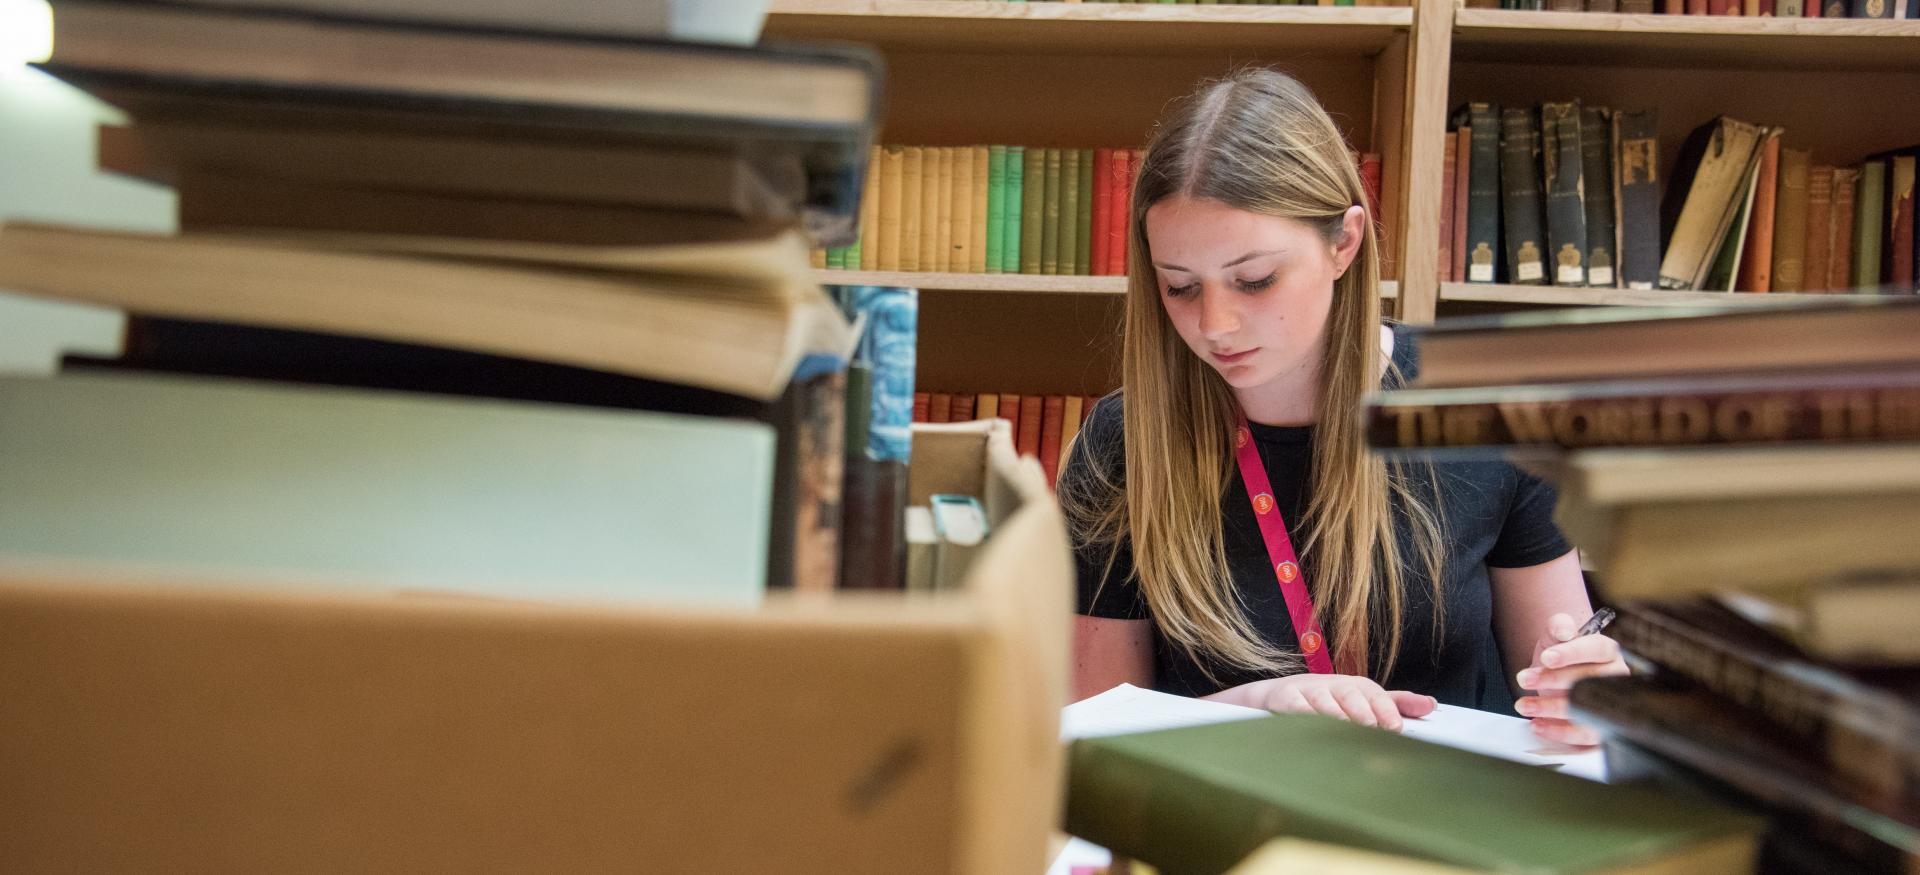 A student studies among a pile of books and folders with a bookshelf in the background.